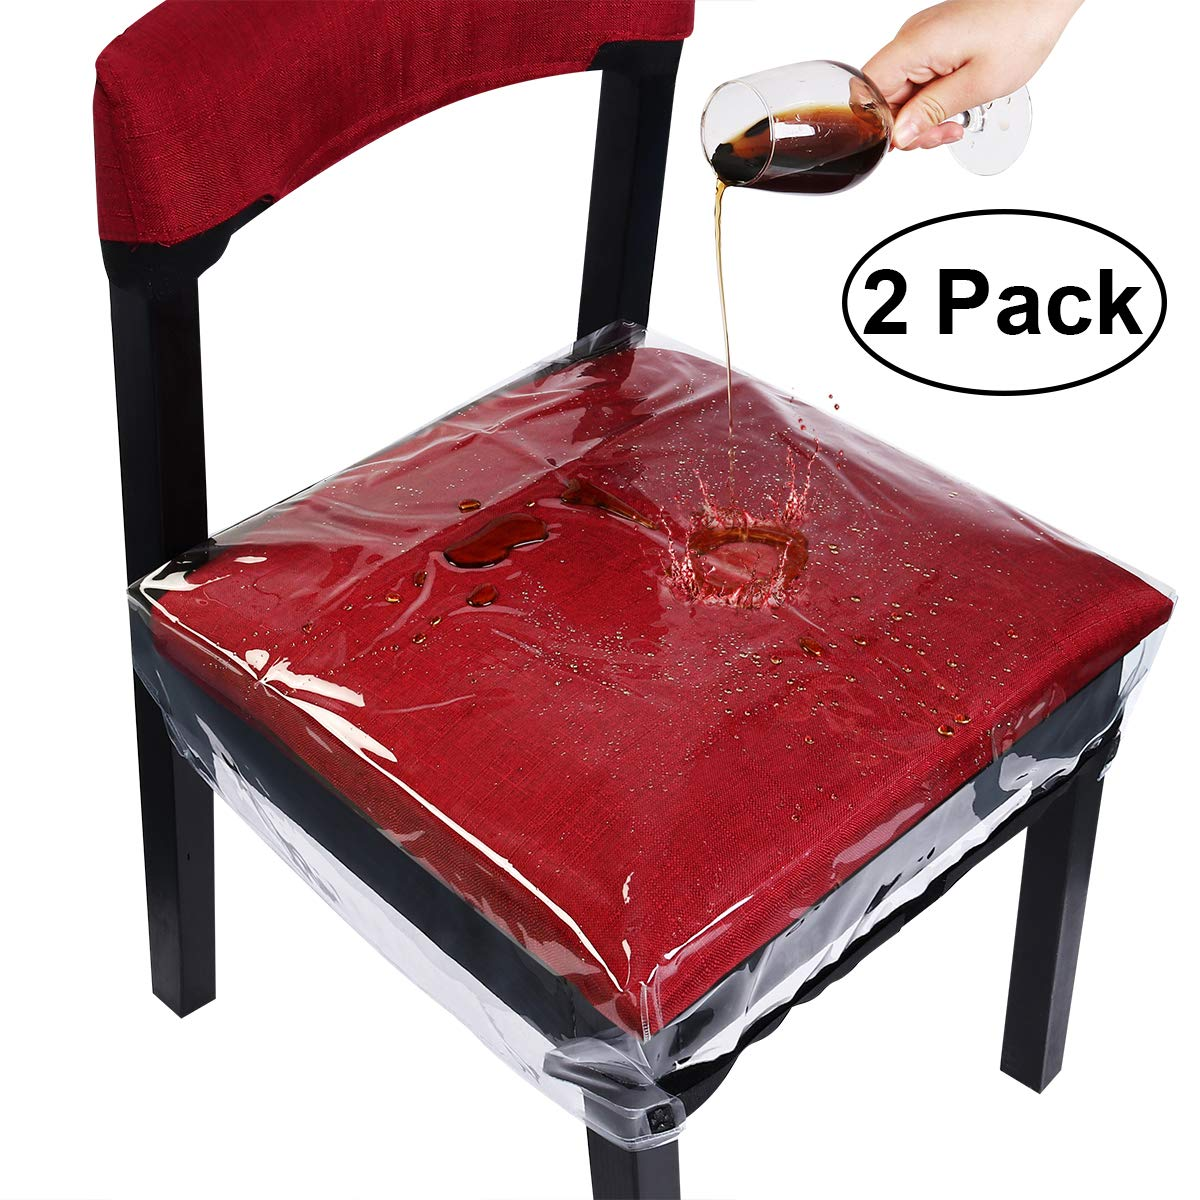 HOMEMAXS Dinning Chair Covers Chair Protector Waterproof Bigger Size with Adjustable Belt Strap for Most Chairs Clear, 2 Pack by HOMEMAXS